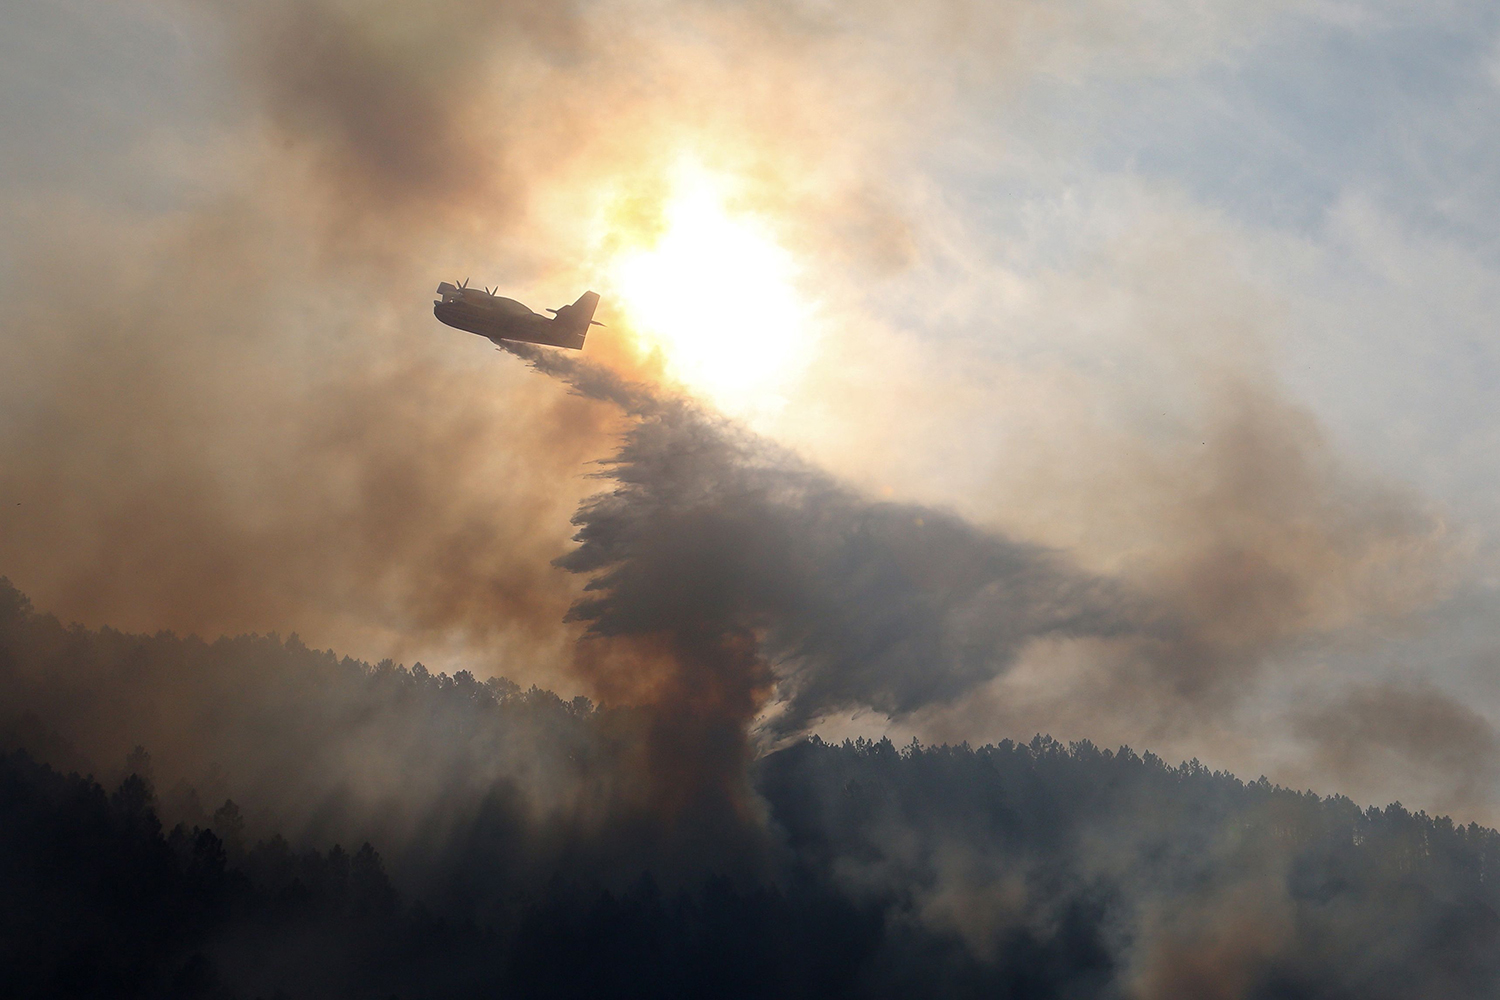 A plane drops water onto a blaze along the l'Arone Pass in the Bavella mountains in Quenza on the French Mediterranean Island of Corsica, after strong winds from storm Ciara caused wildfires to spread on the island, on Feb. 12. PASCAL POCHARD-CASABIANCA/AFP via Getty Images